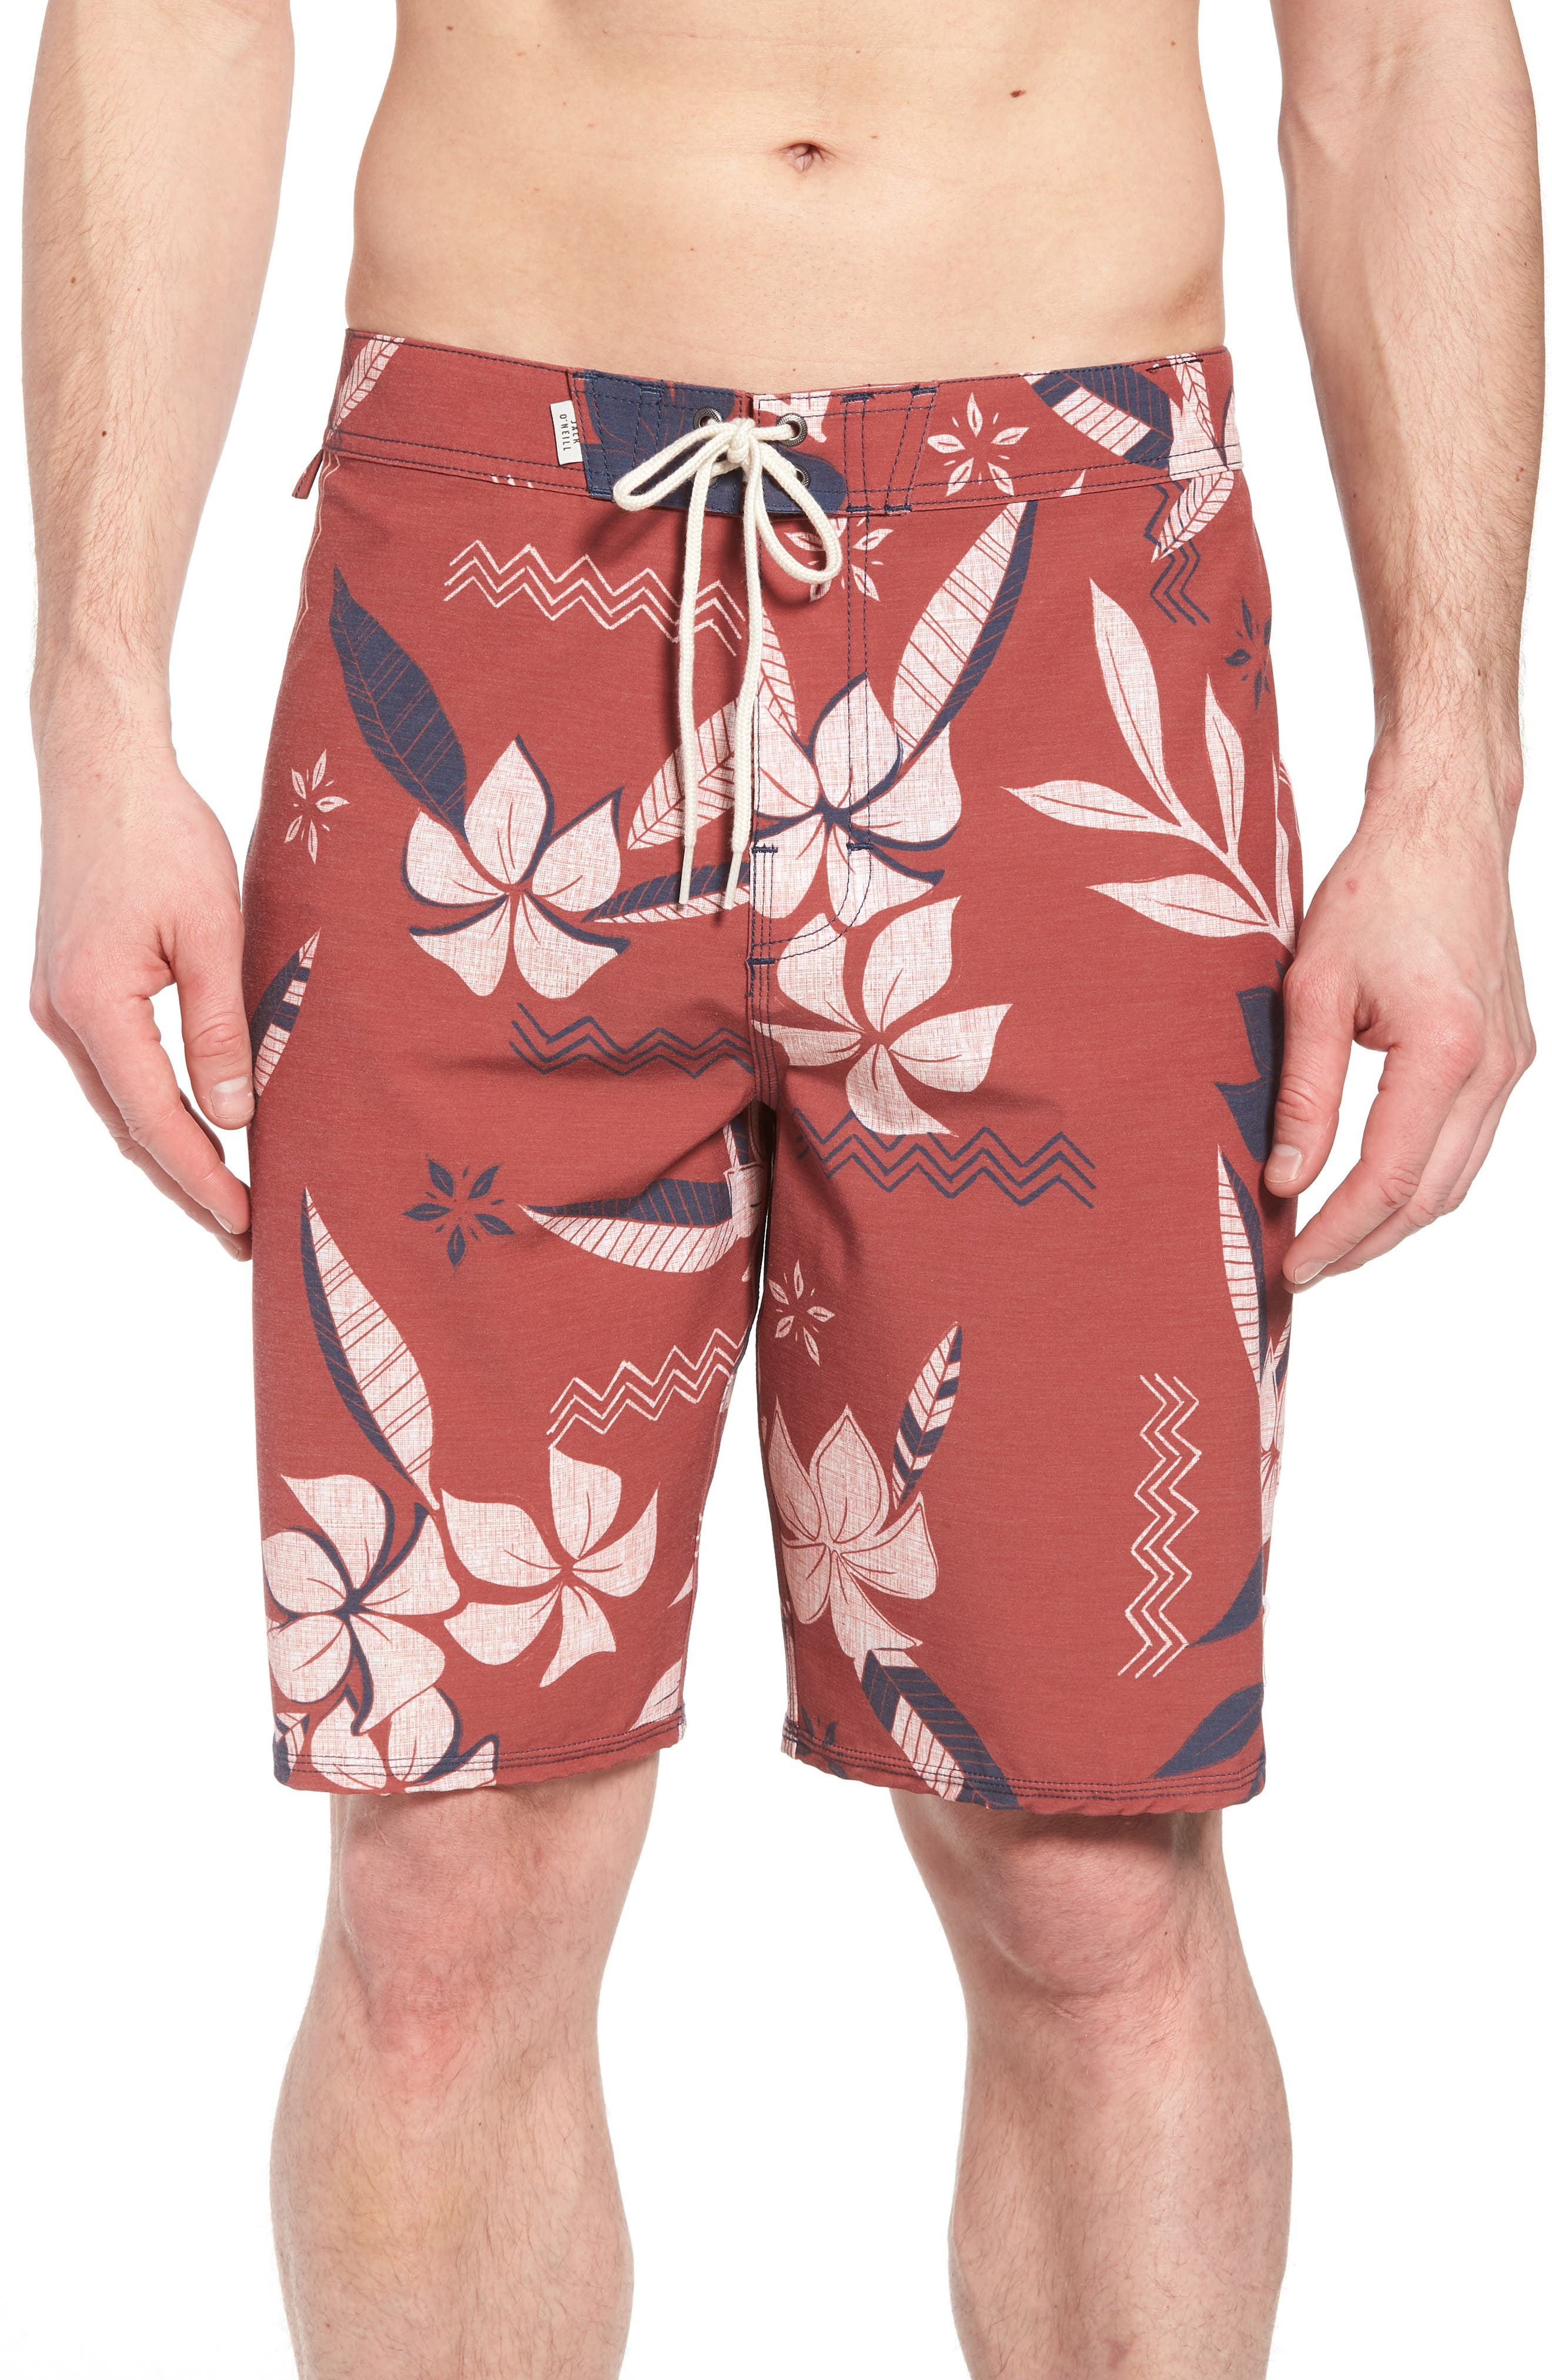 Maui Board Shorts,                             Main thumbnail 3, color,